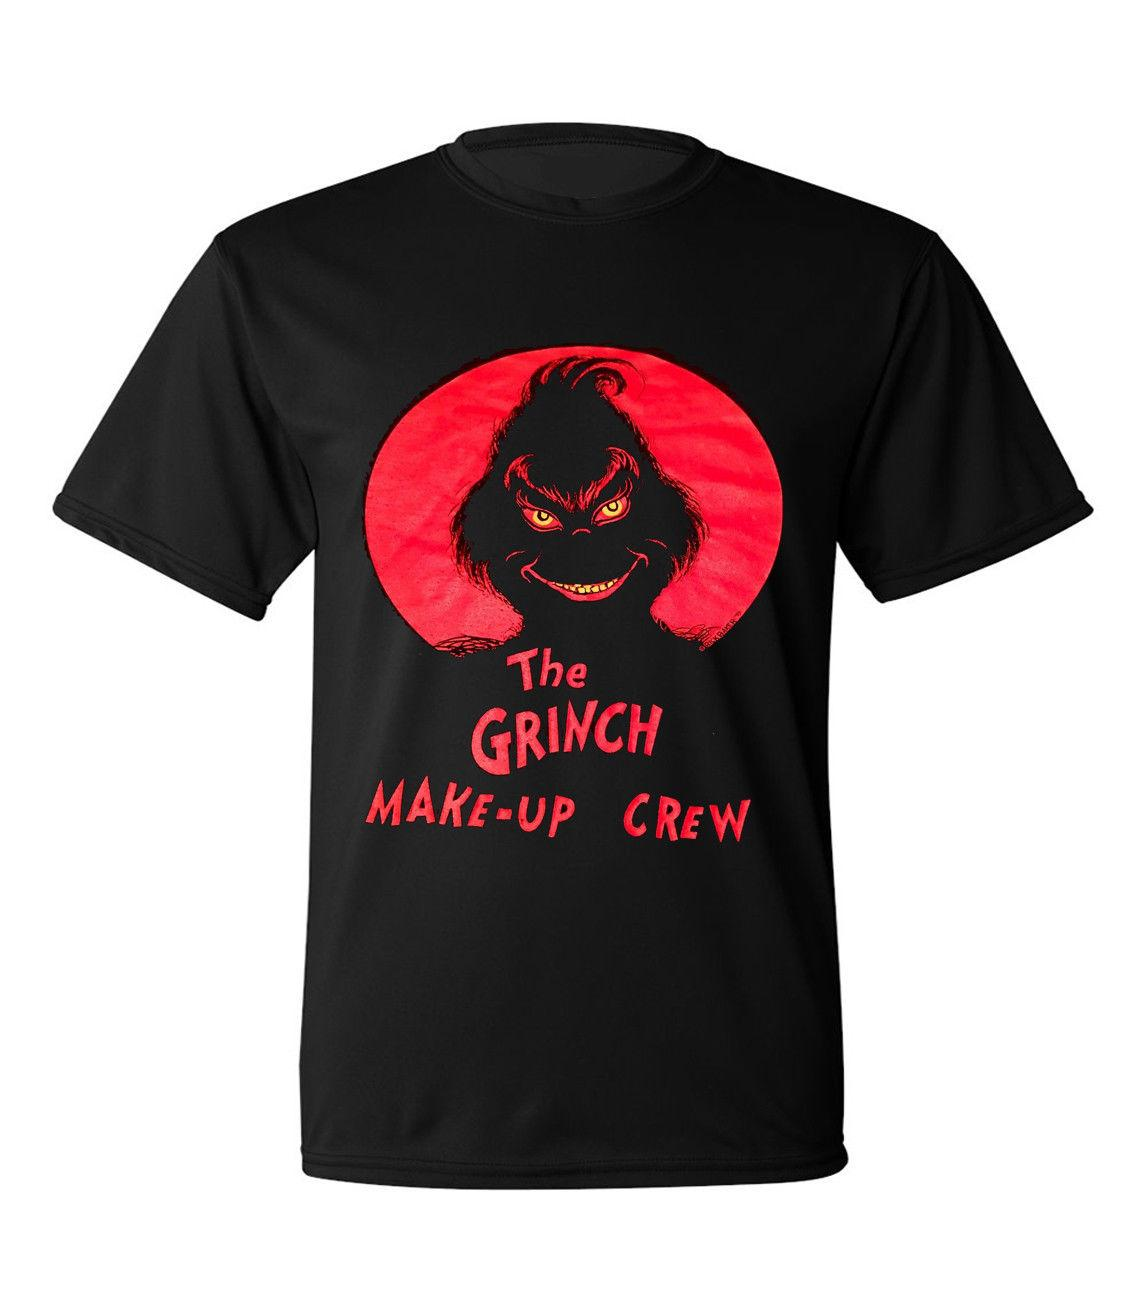 How The Grinch Stole Christmas Dr. Suess Movie Black T Shirt Size 100%  Cotton Casual Printing Short Sleeve Men T Shirt O Neck Cheap T Shirts Long  Sleeve T ... 2460661ec